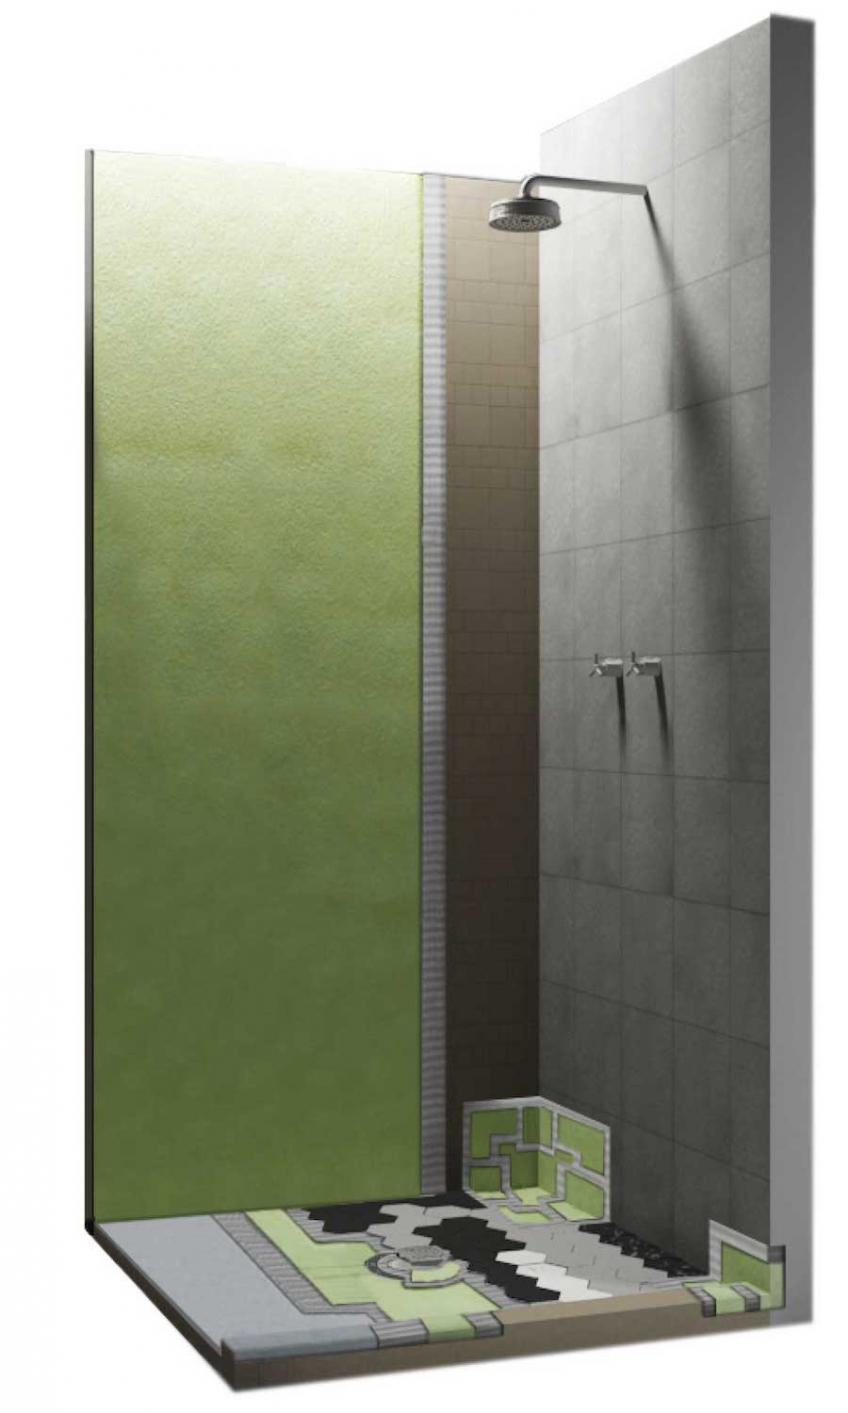 Italian Brand Offers Shower Waterproofing System | Residential ...